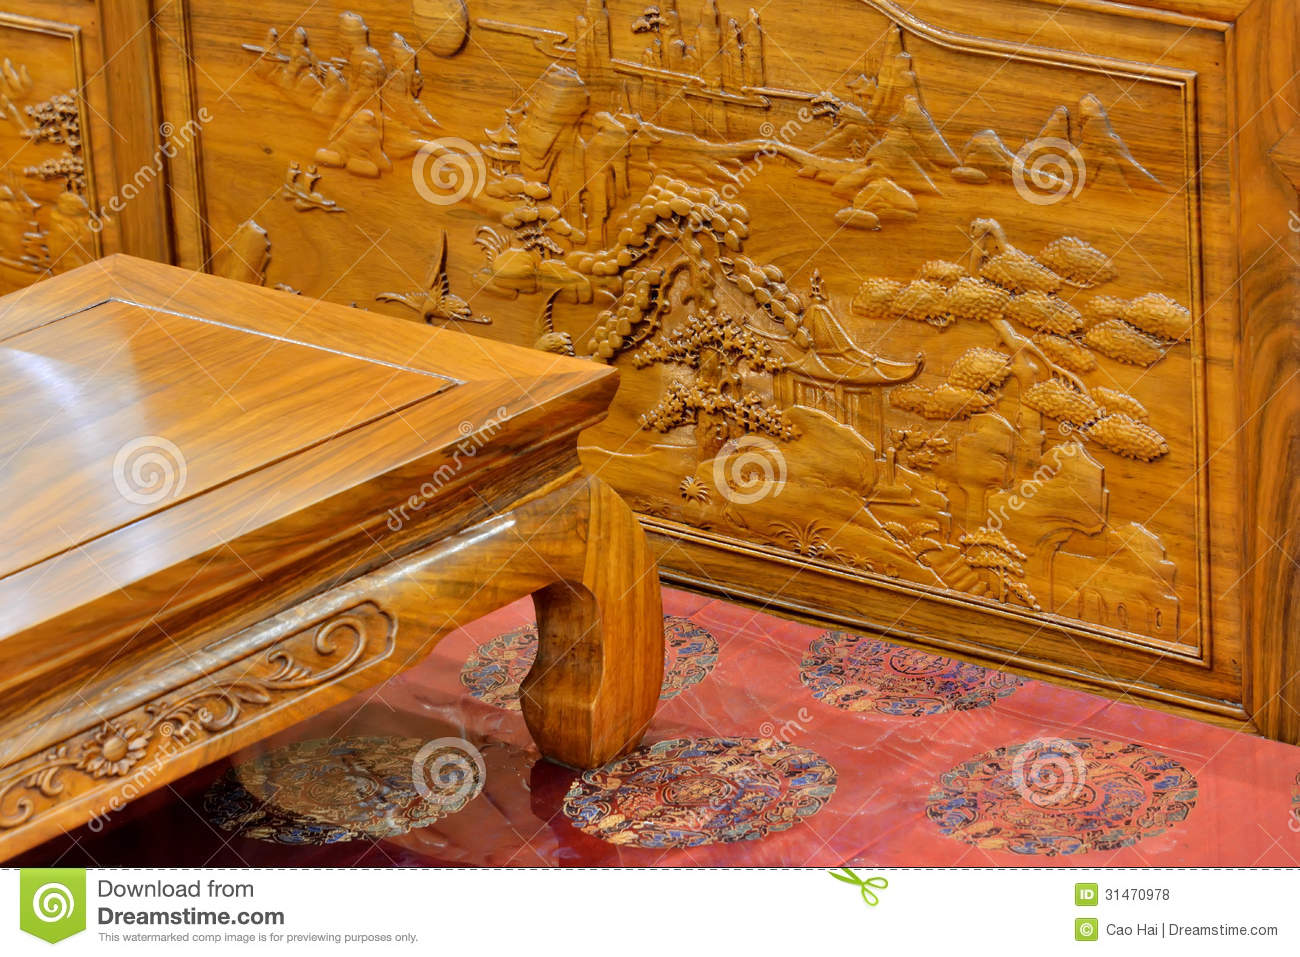 Chinese Traditional Wooden Furniture Royalty Free Stock Photos Image 31470978